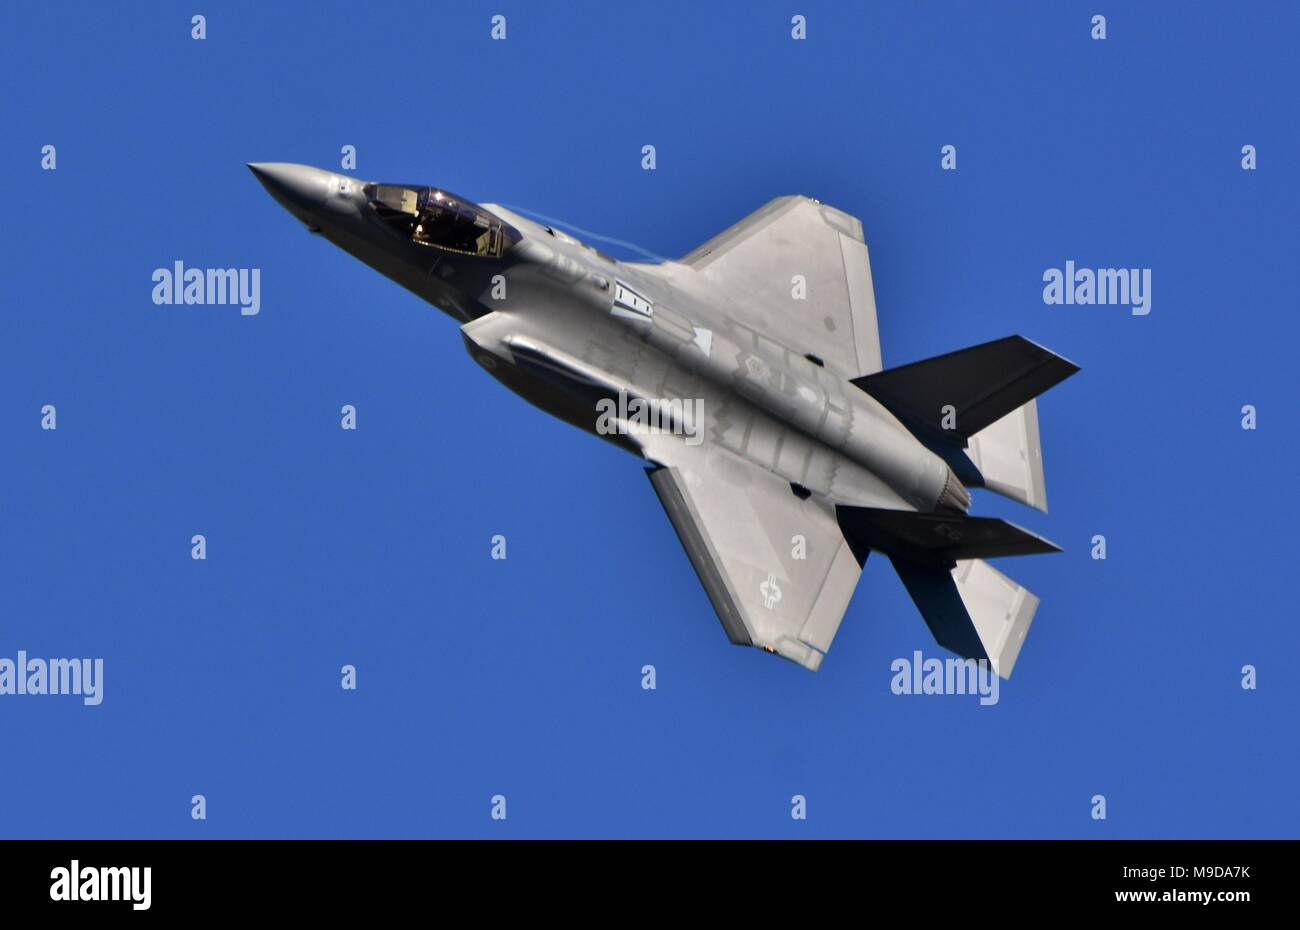 A U.S. Air Force F-35 Joint Strike Fighter (Lightning II) jet flying. This F-35 is assigned to the 33rd Fighter Wing from Eglin Air Force Base. Stock Photo